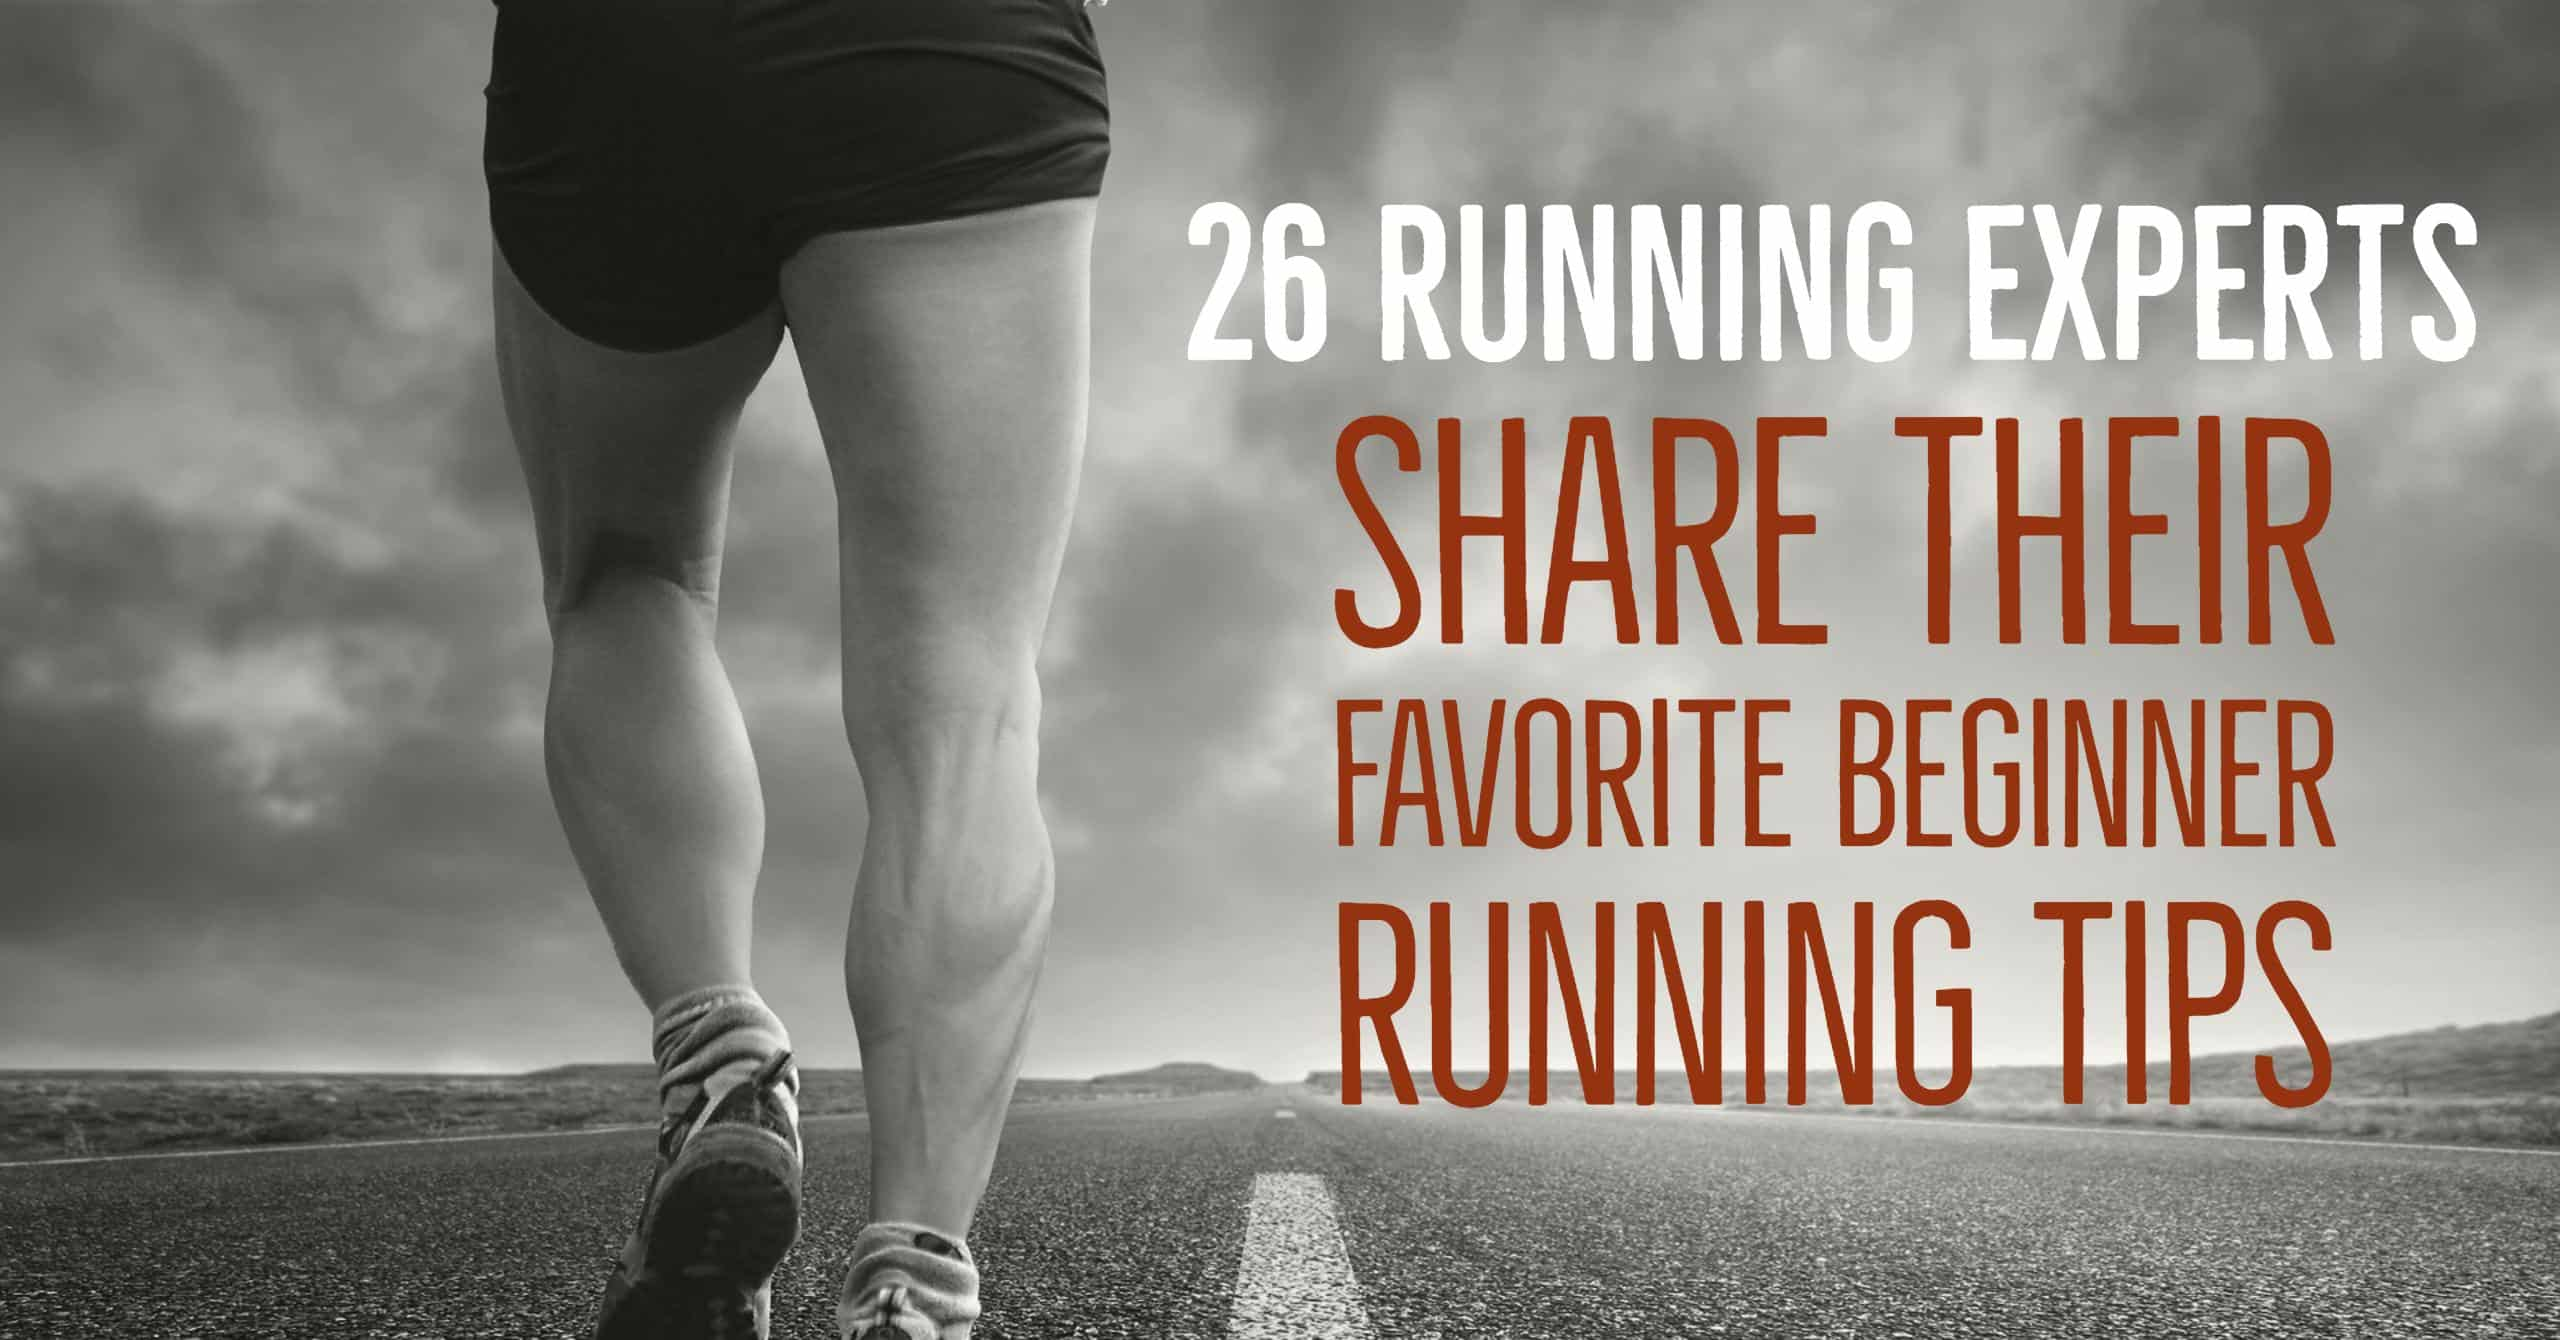 26 of the top running experts share their favorite beginner tunning tips.